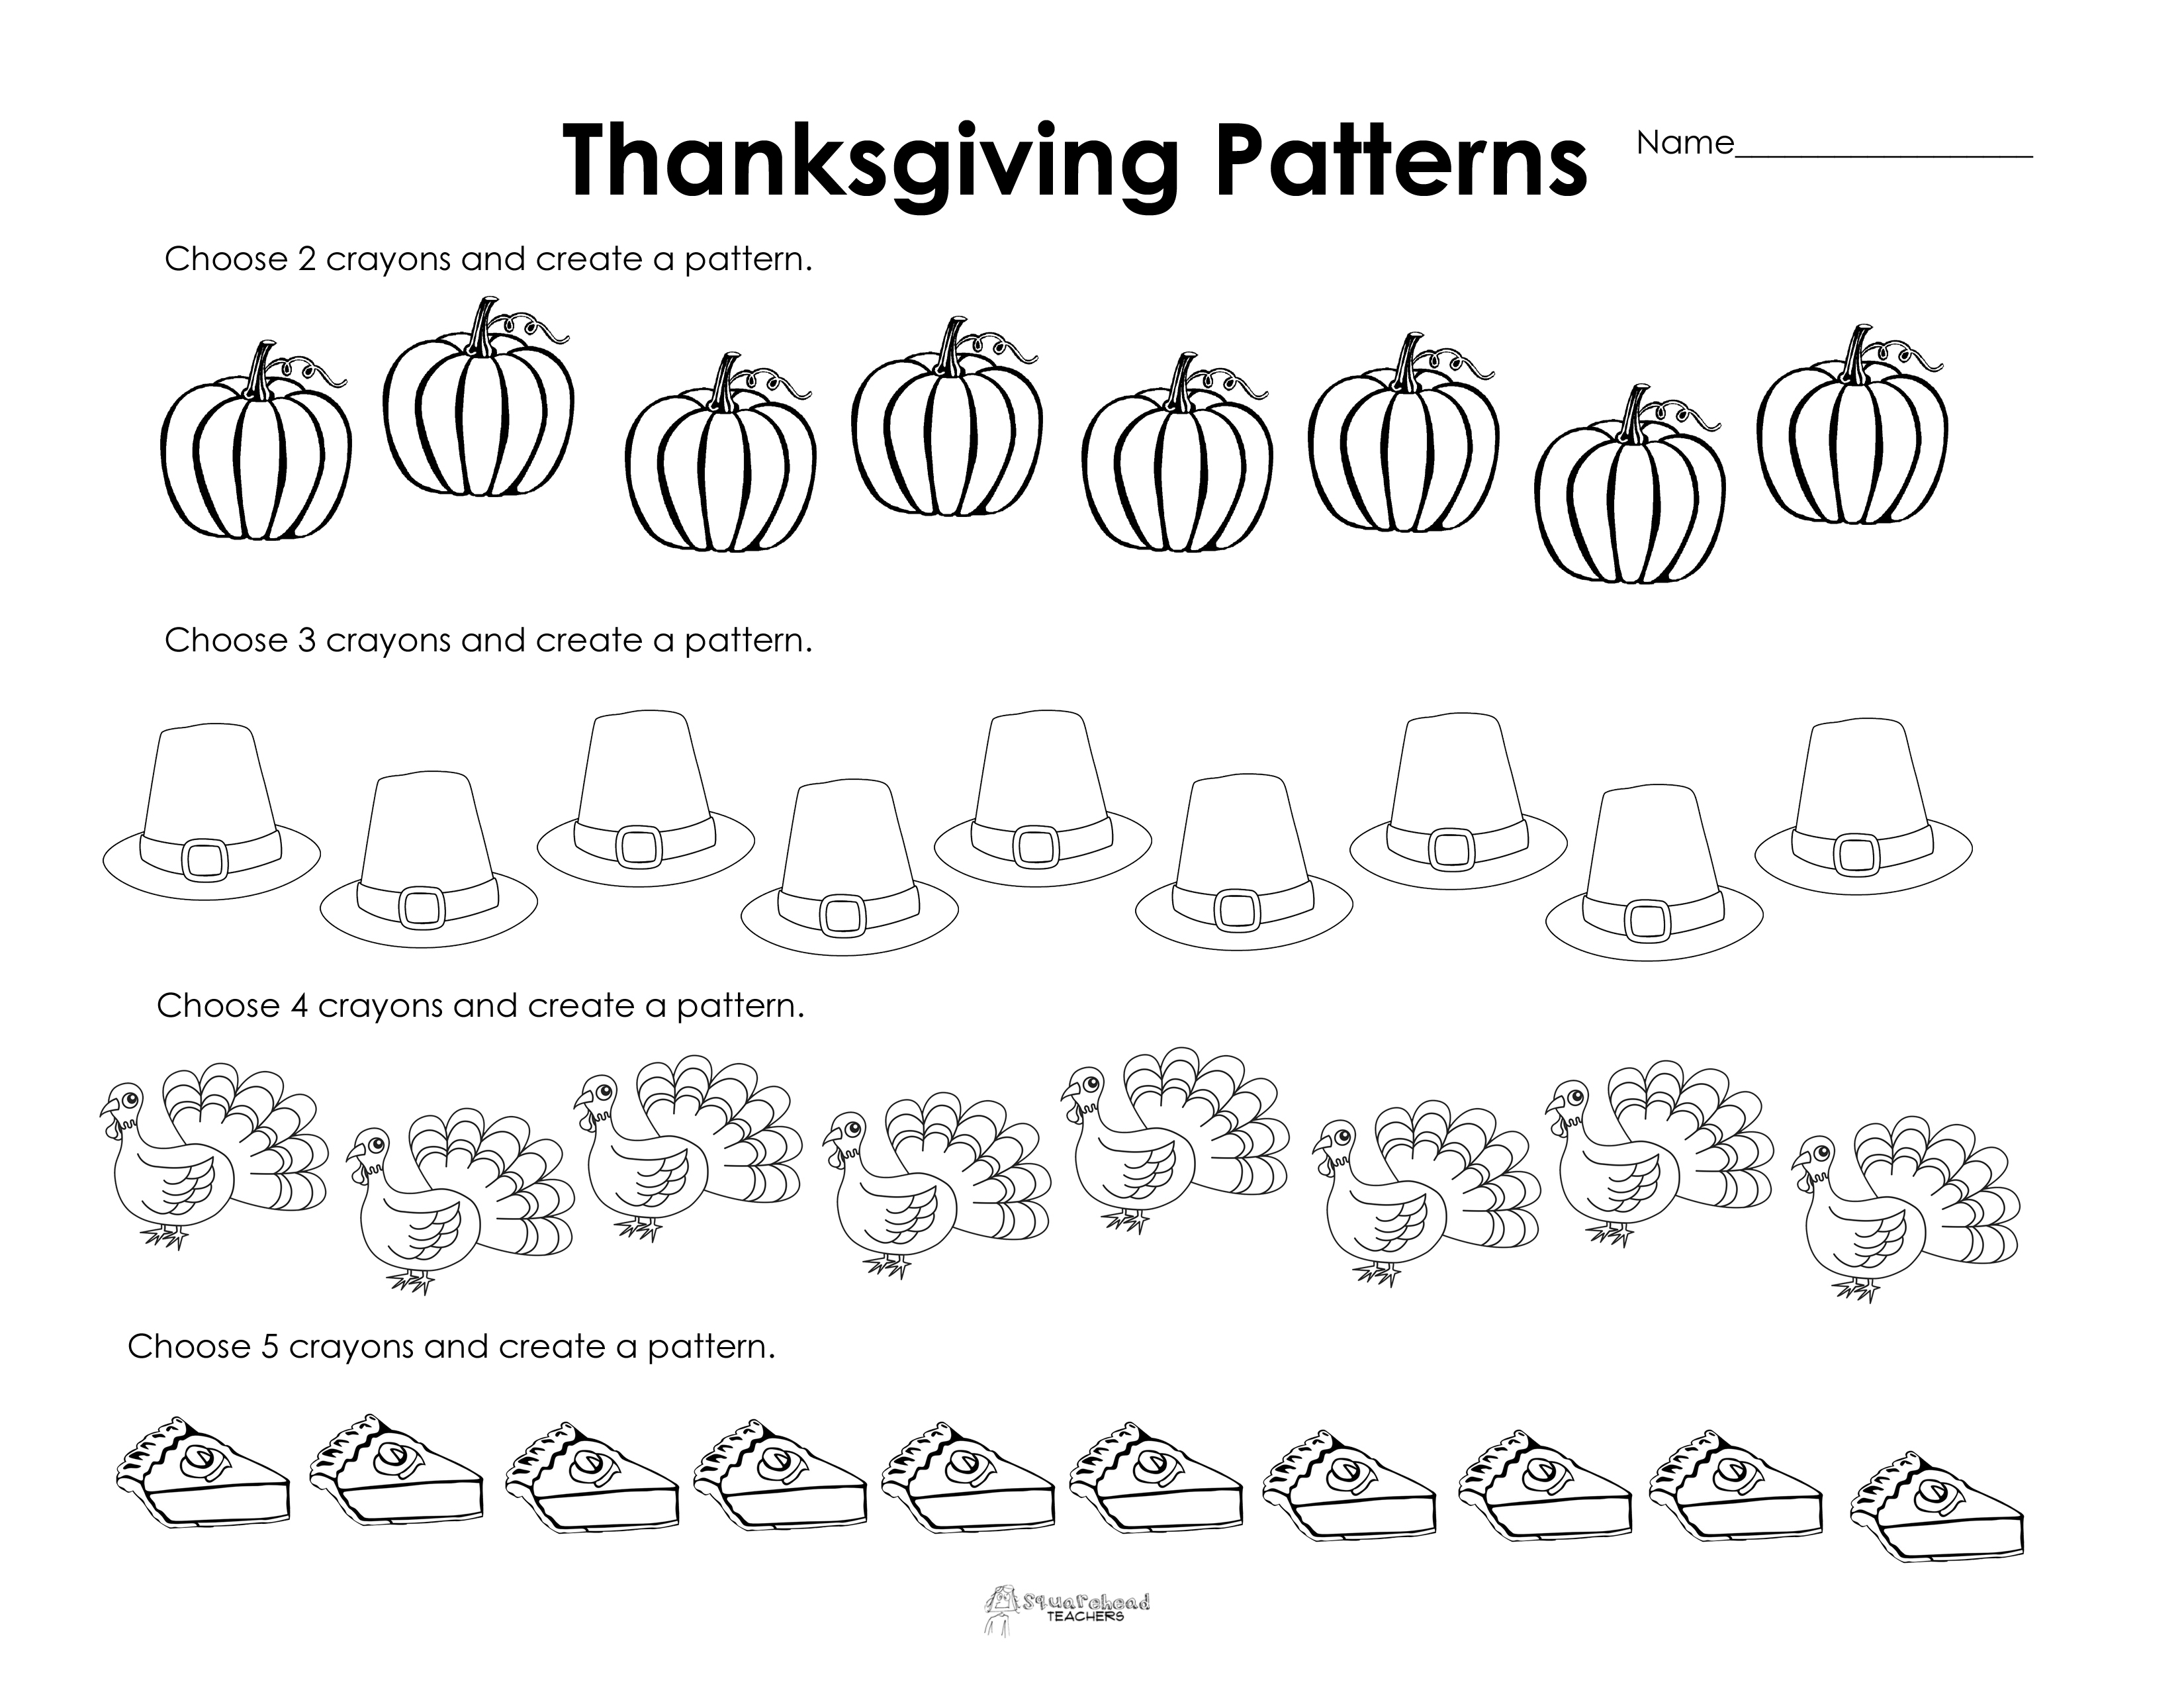 Free Printable Thanksgiving Worksheets For Preschoolers - 8.13 - Math Worksheets Thanksgiving Free Printable